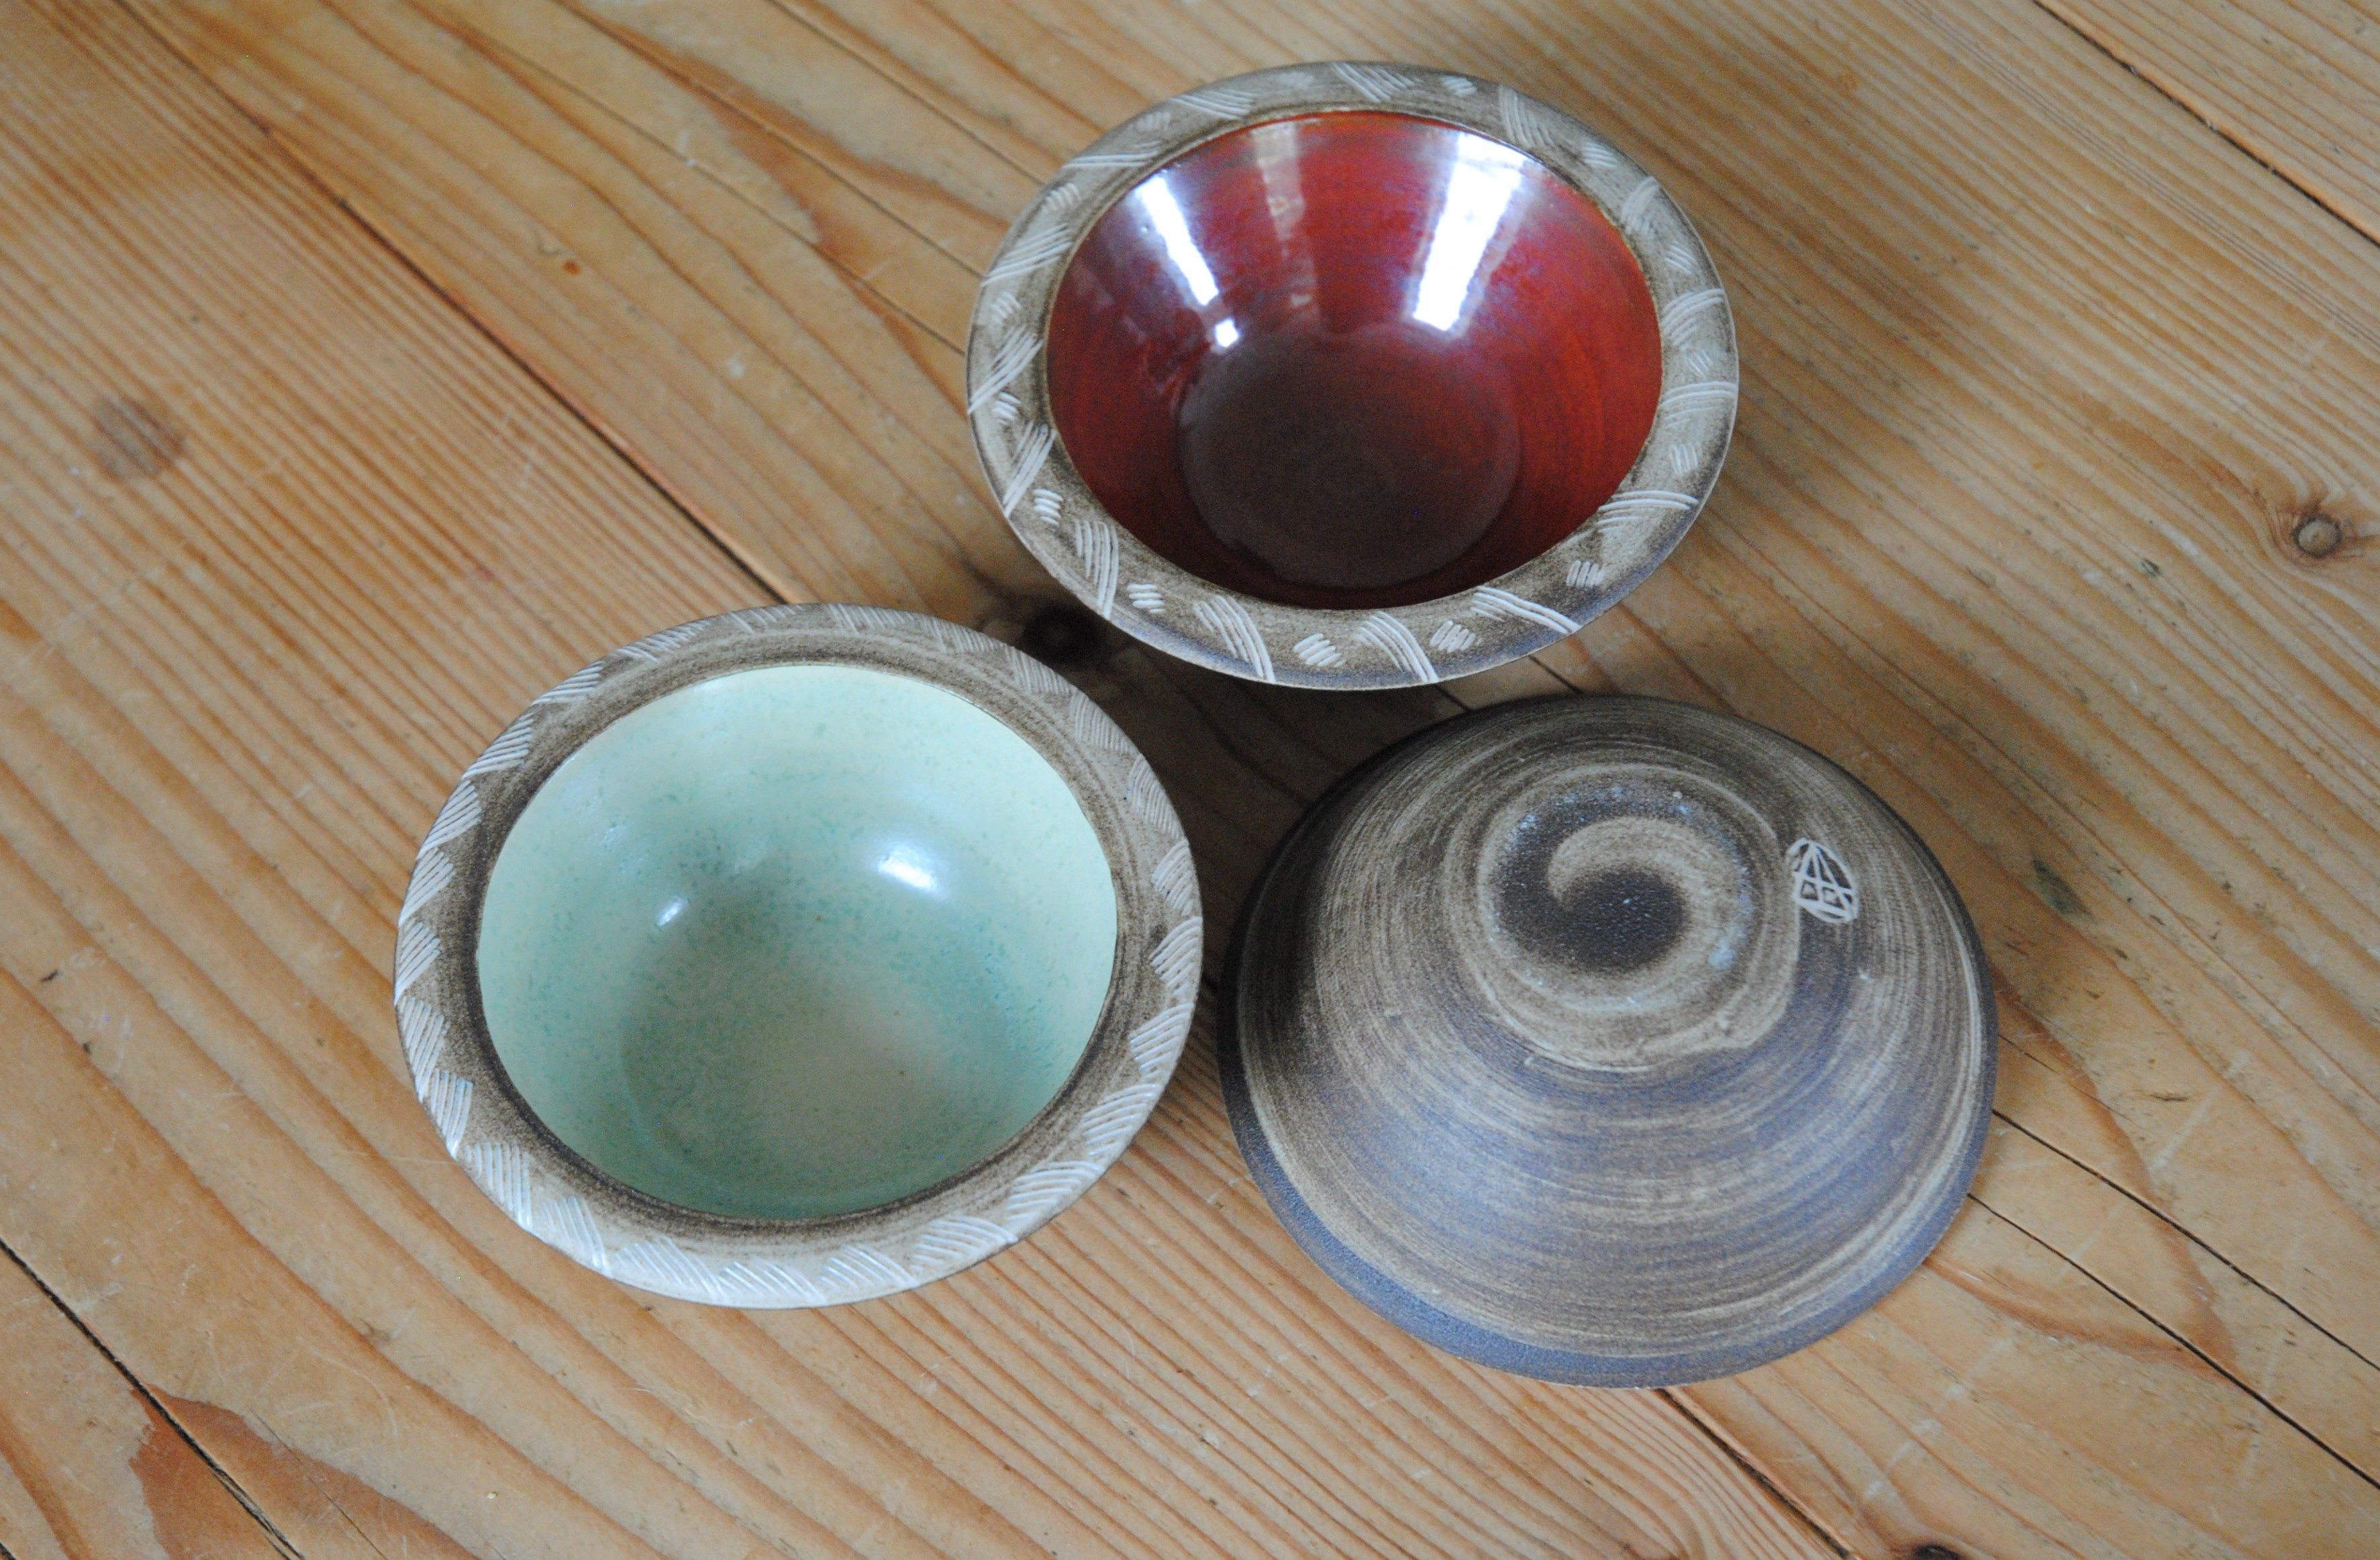 Tiny decorated bowls